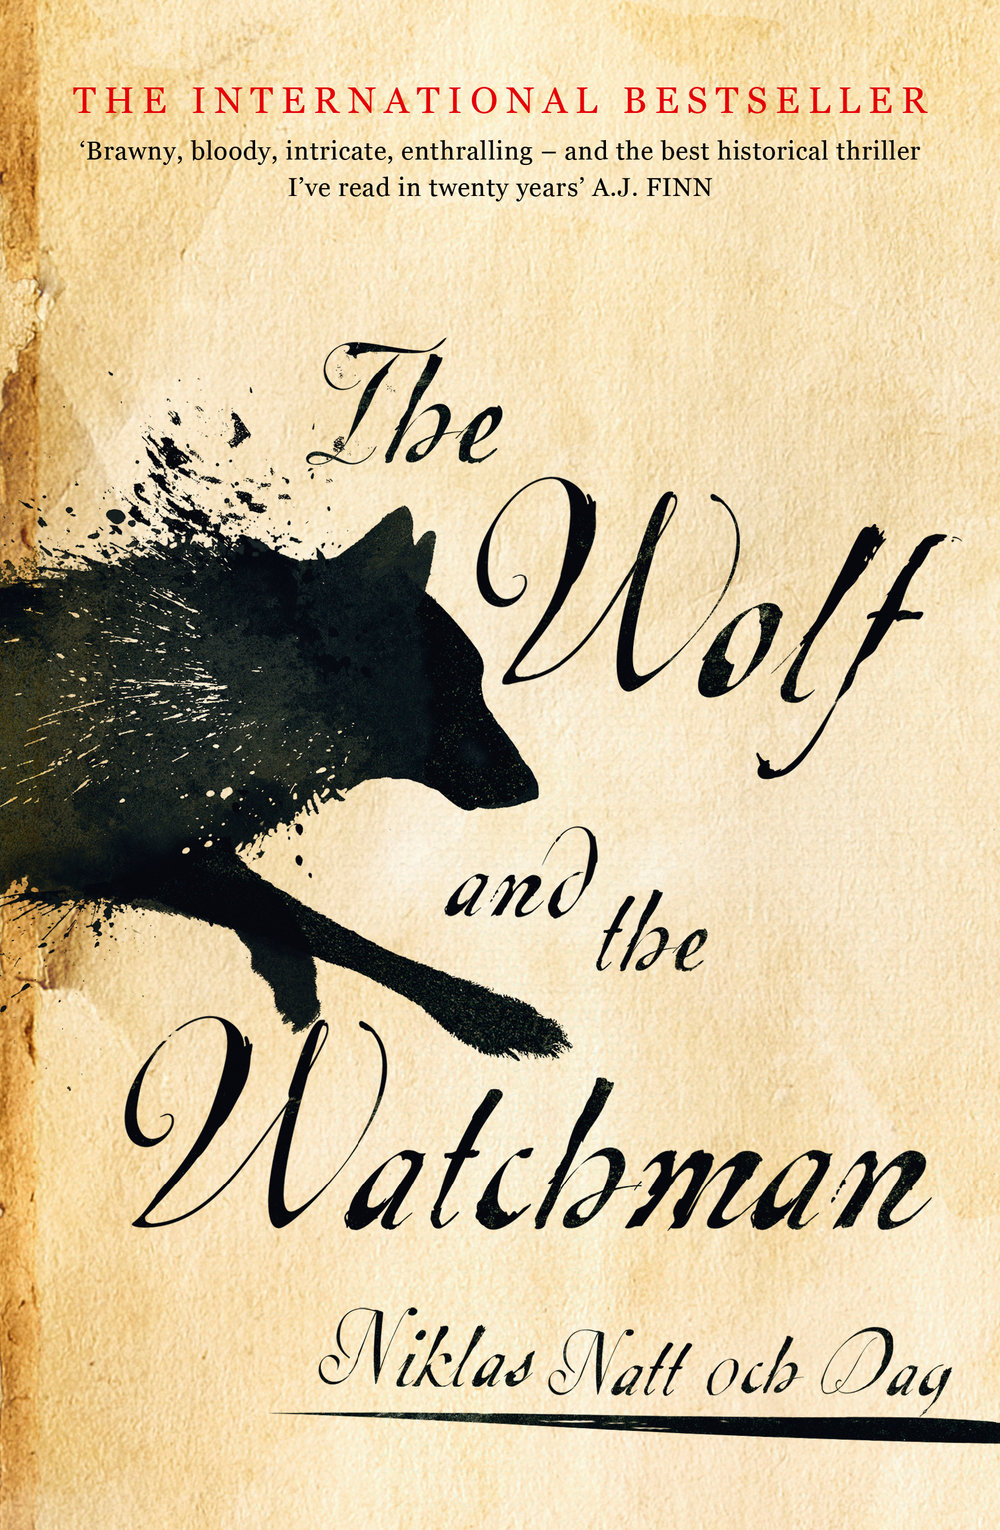 wolf and the watchman.jpg